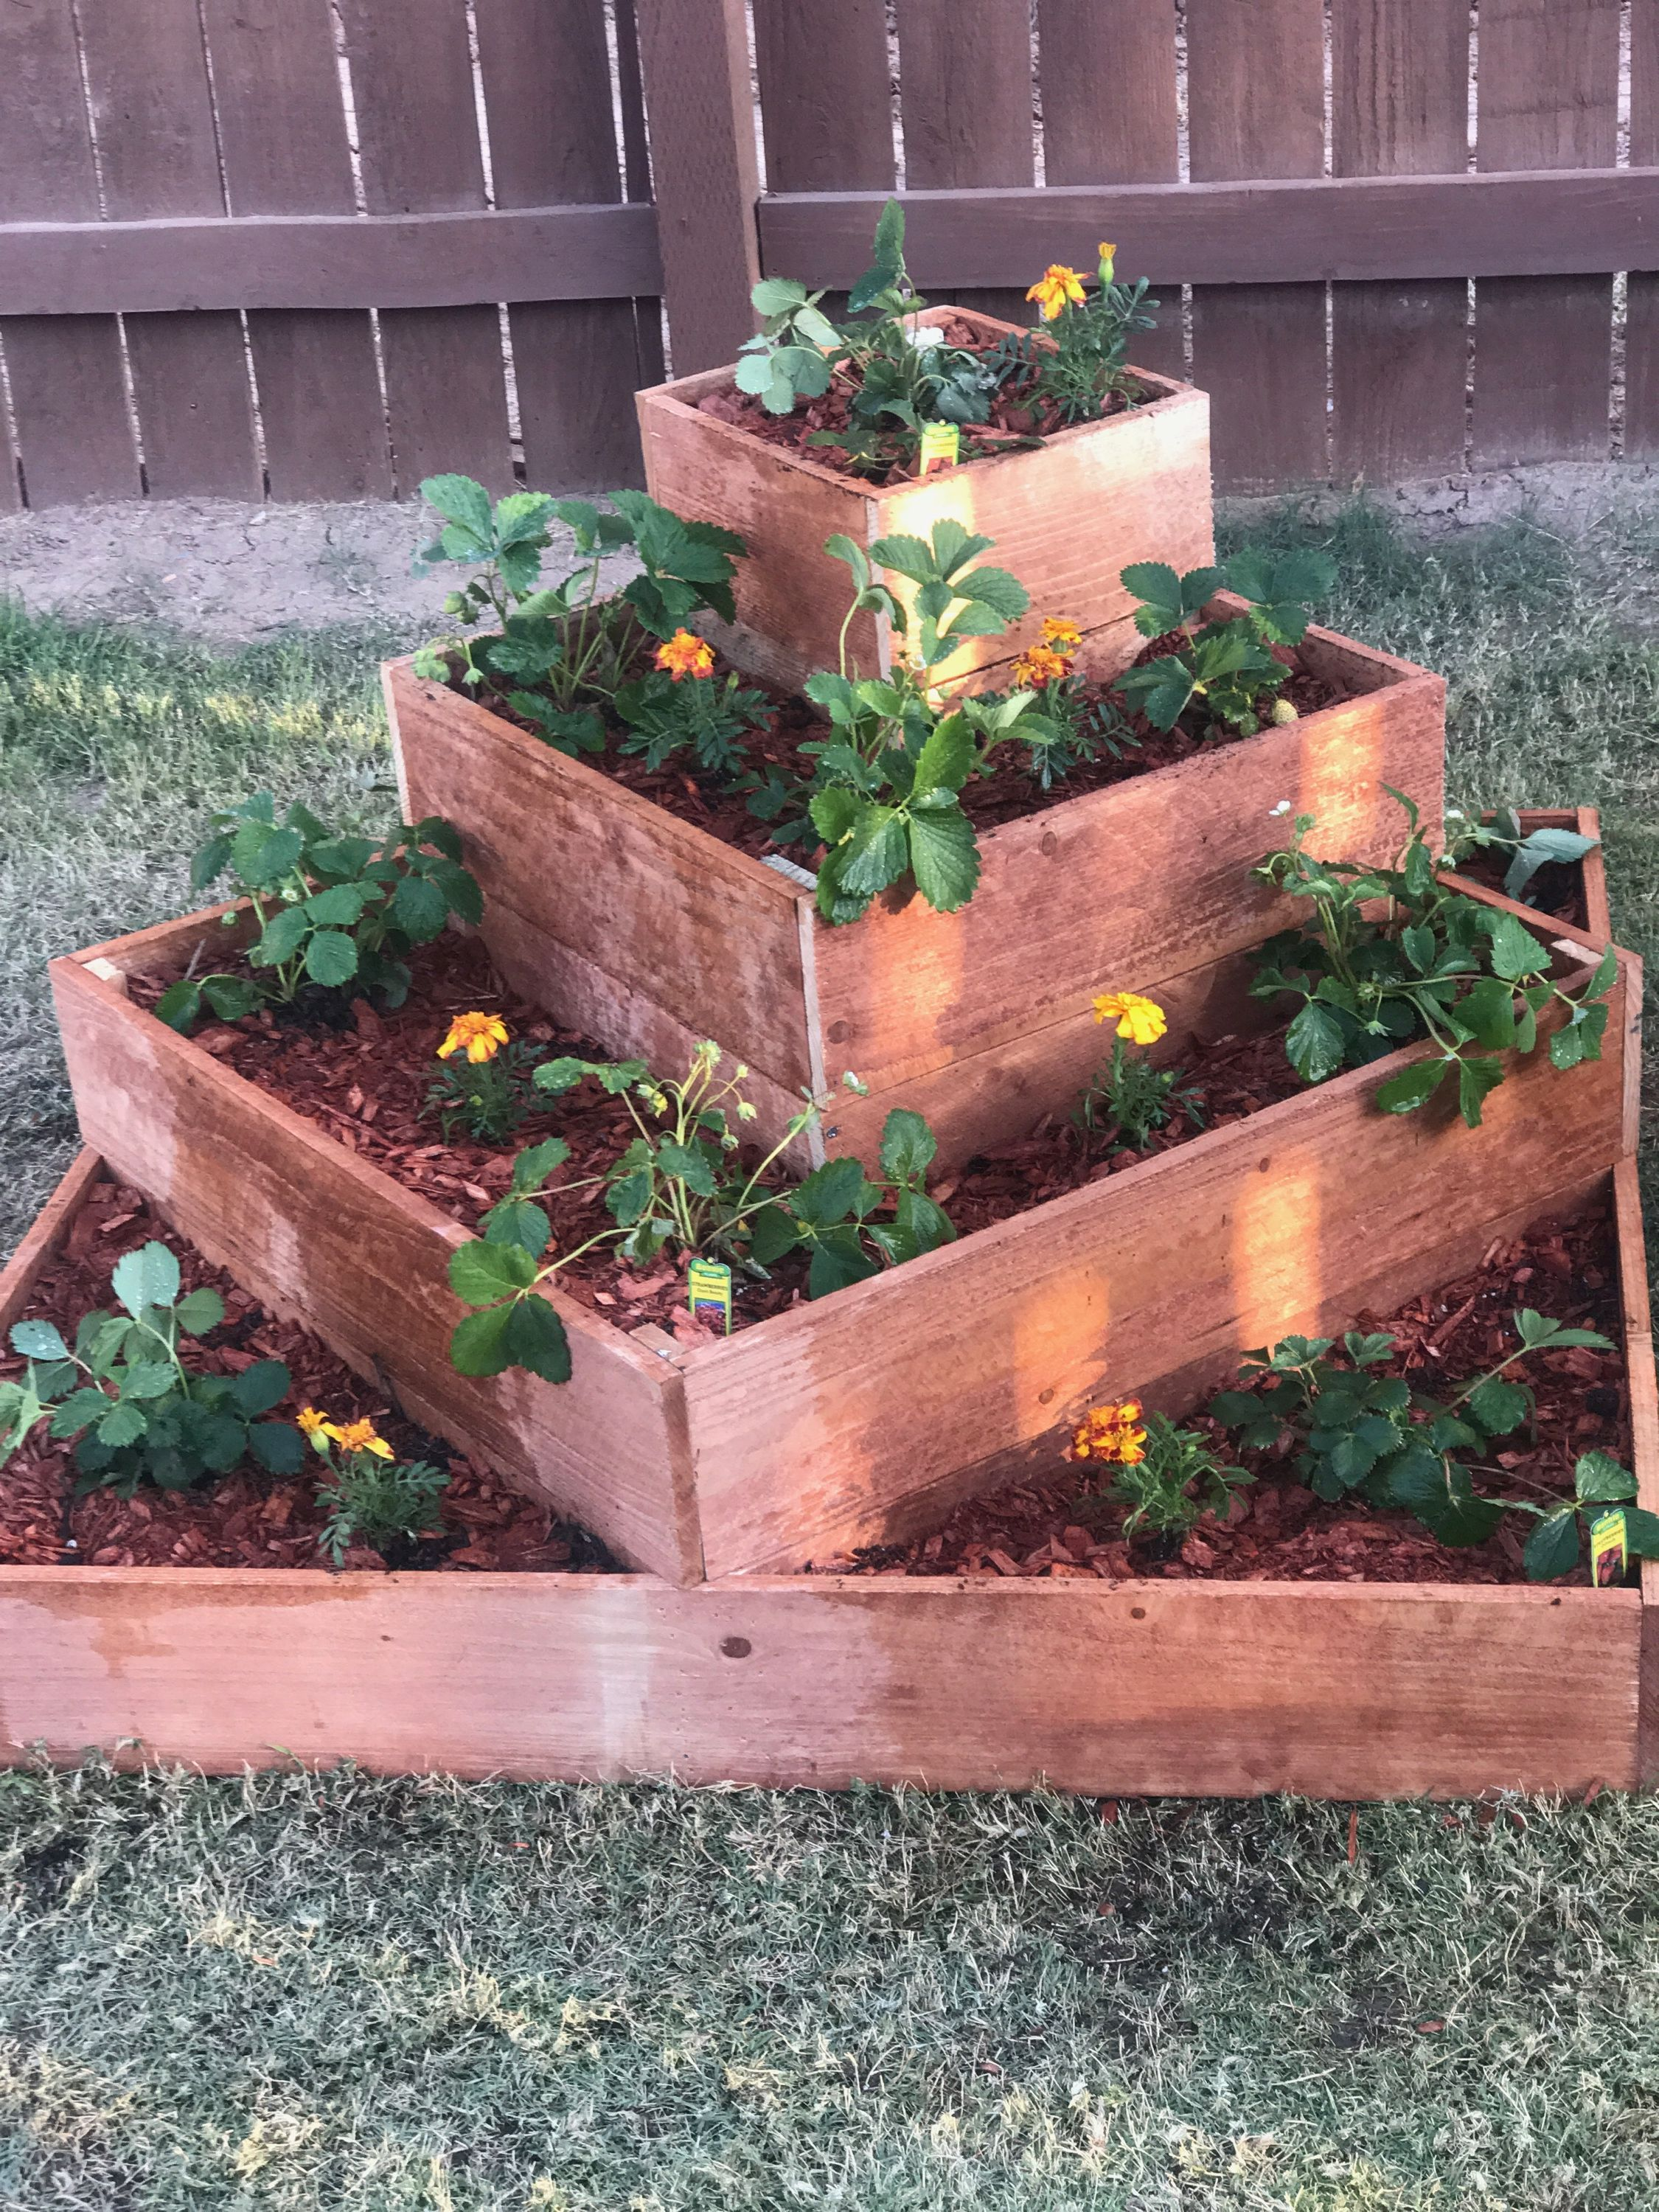 My Cedar Fence Tiered Strawberry Raised Bed Made By Yours Truly I M Very Proud Raised Garden Vegetable Garden Raised Beds Cedar Raised Garden